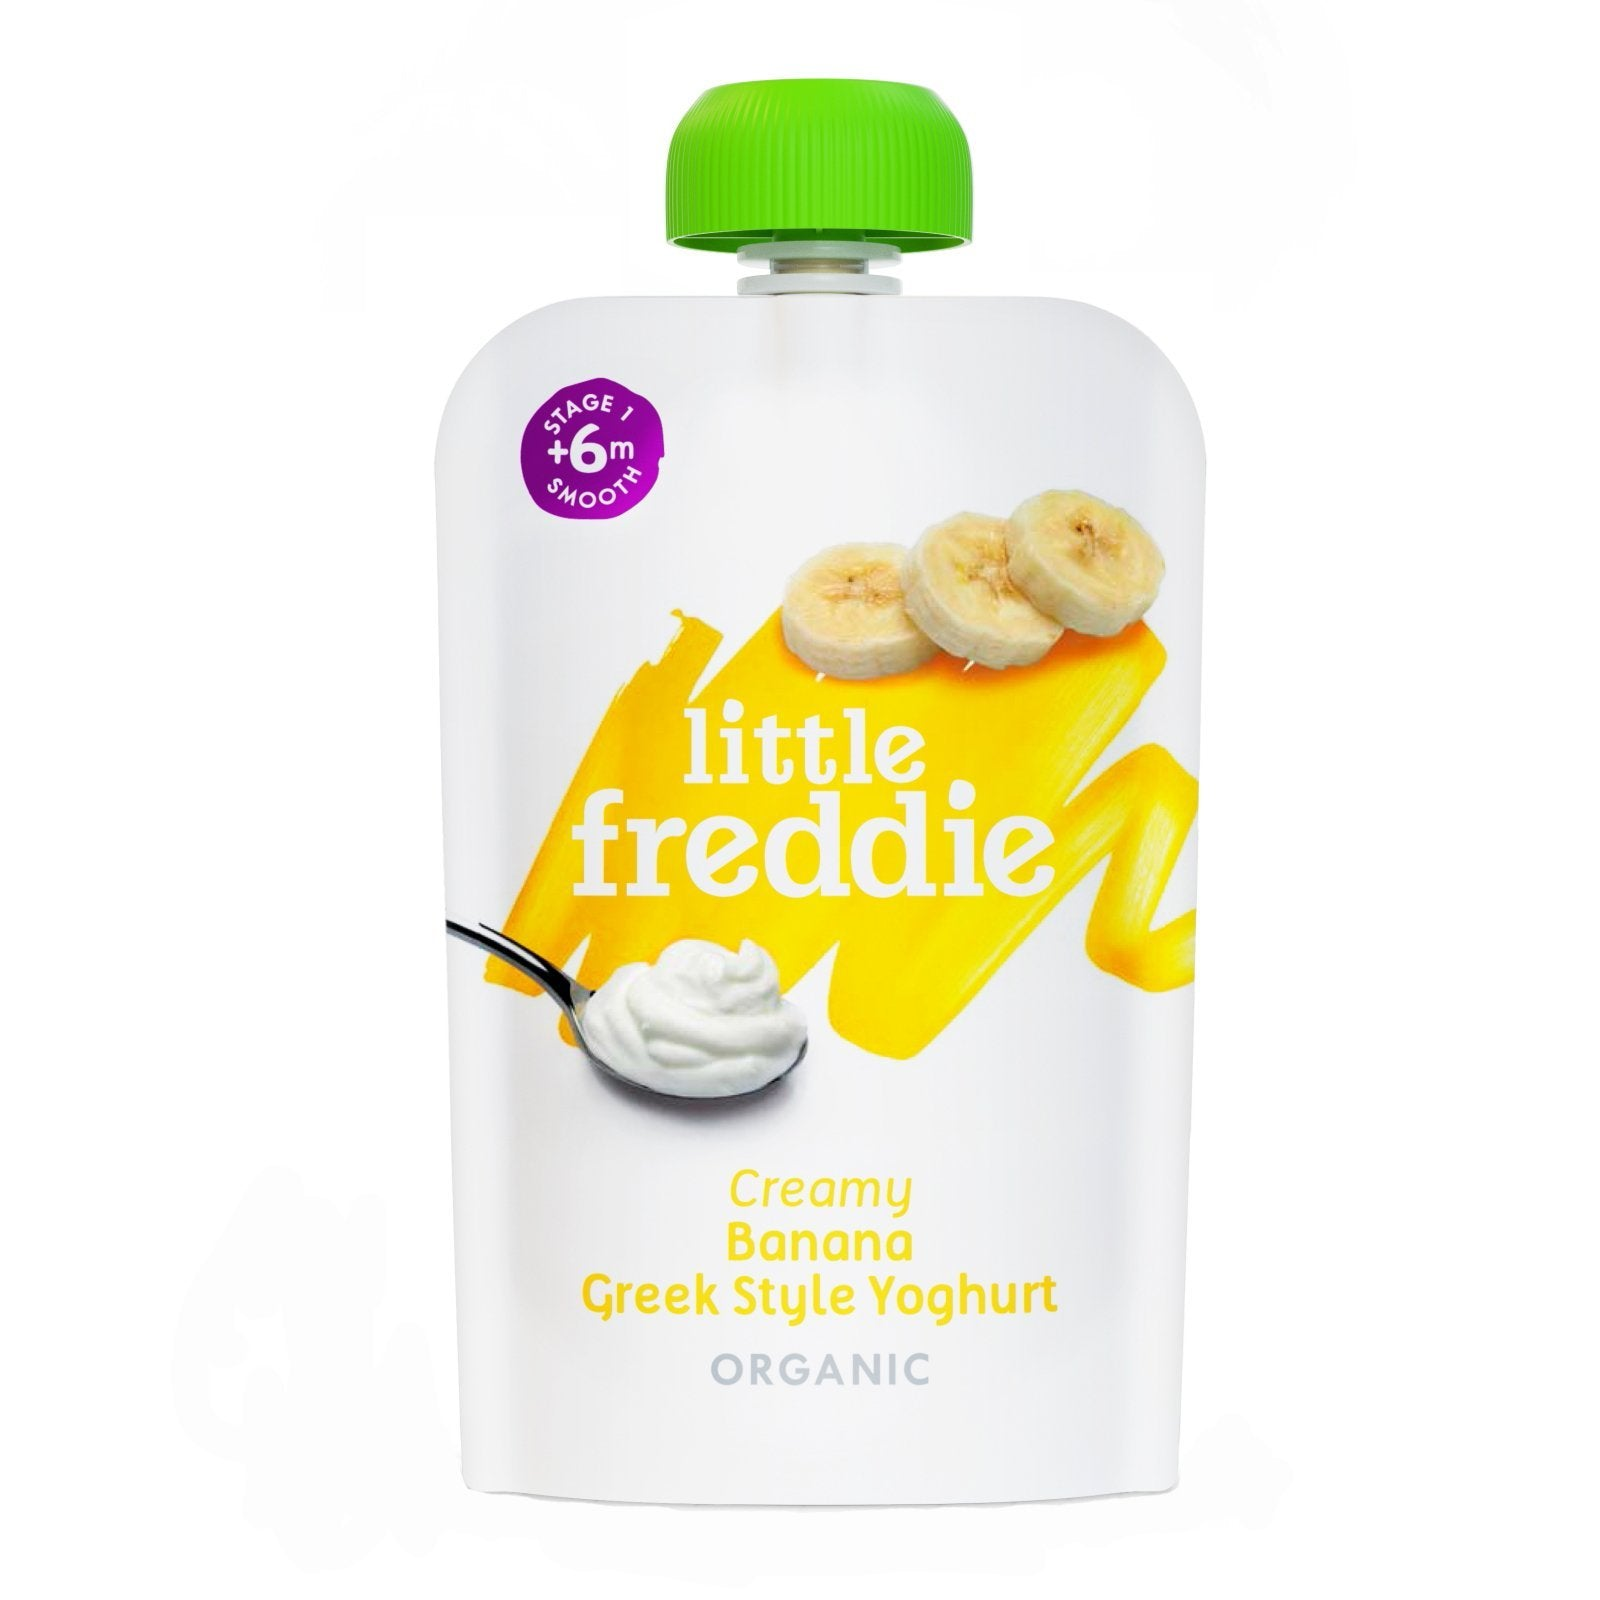 Little Freddie  Creamy  Banana Greek Style Yoghurt - 100g